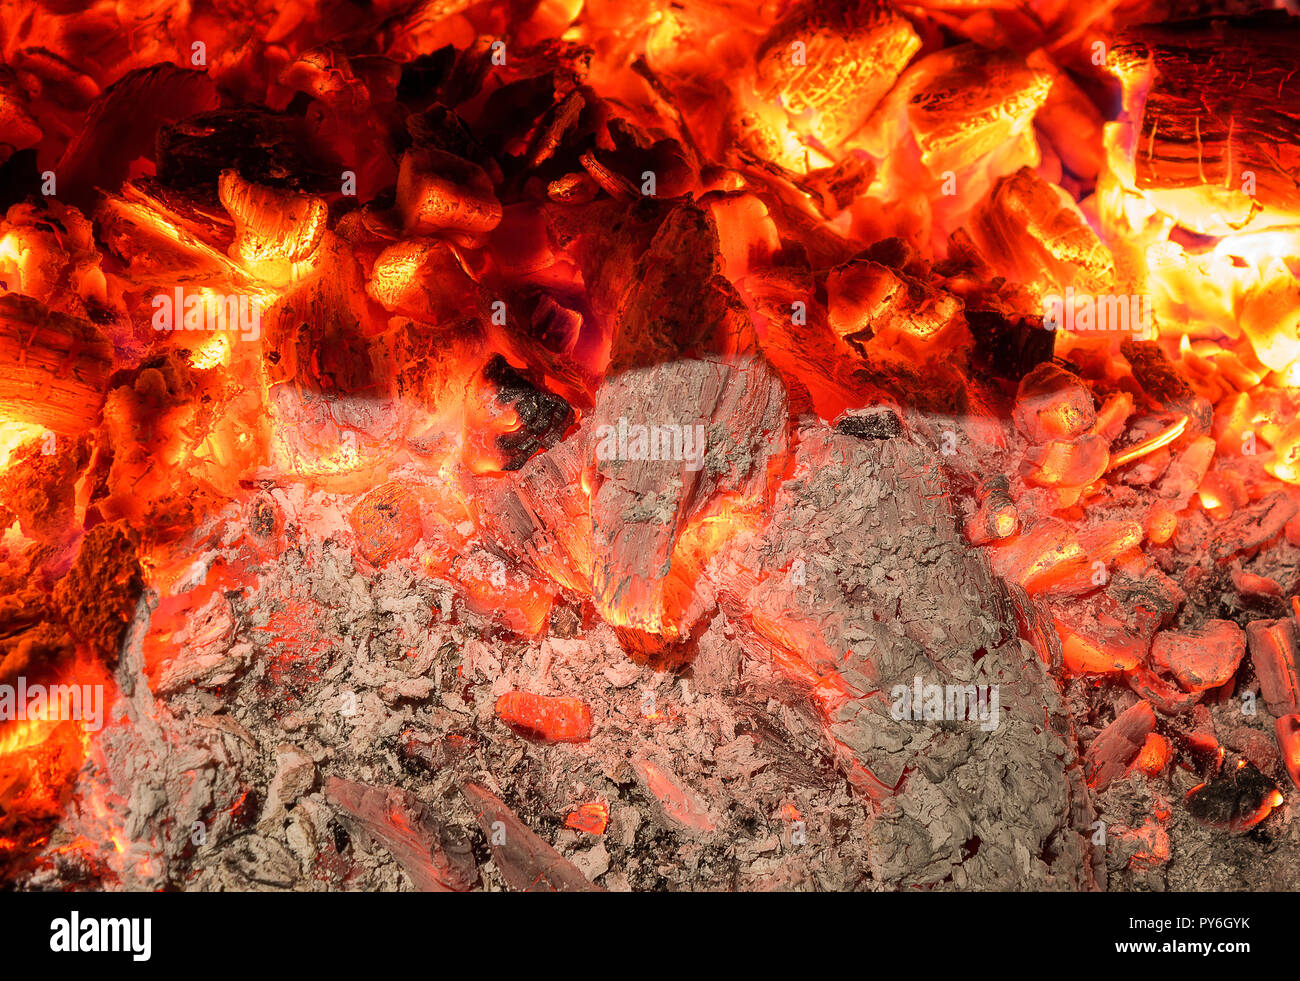 Infinite details of screaming hot wood ember and ash - Stock Image